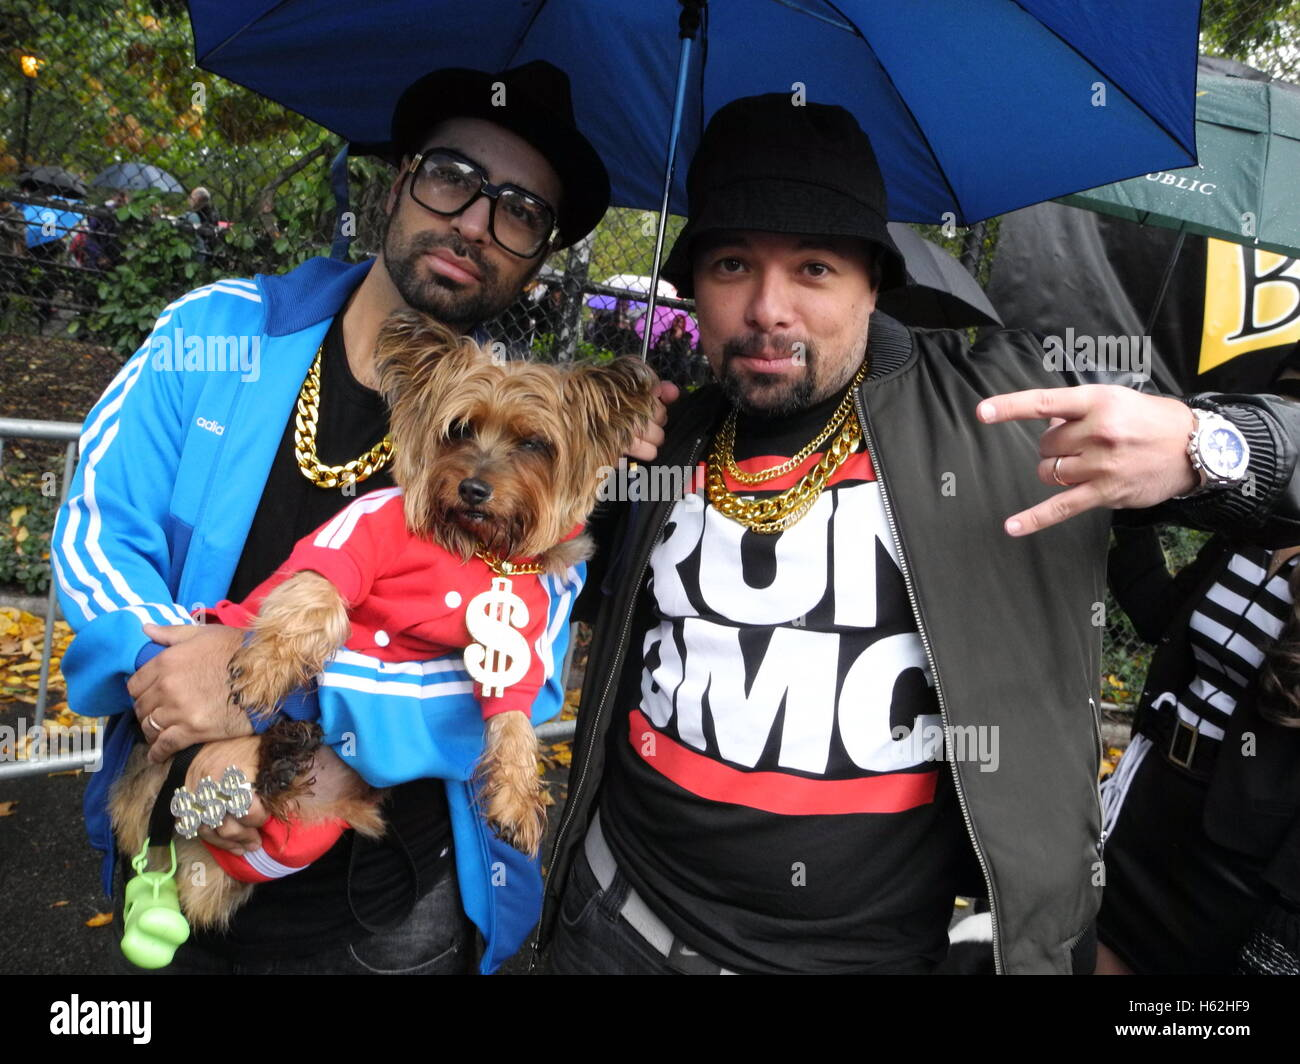 New York, USA. 22nd Oct, 2016. Two New Yorkers dressed up as rappers from Run DMC and their costumed dog stand at - Stock Image